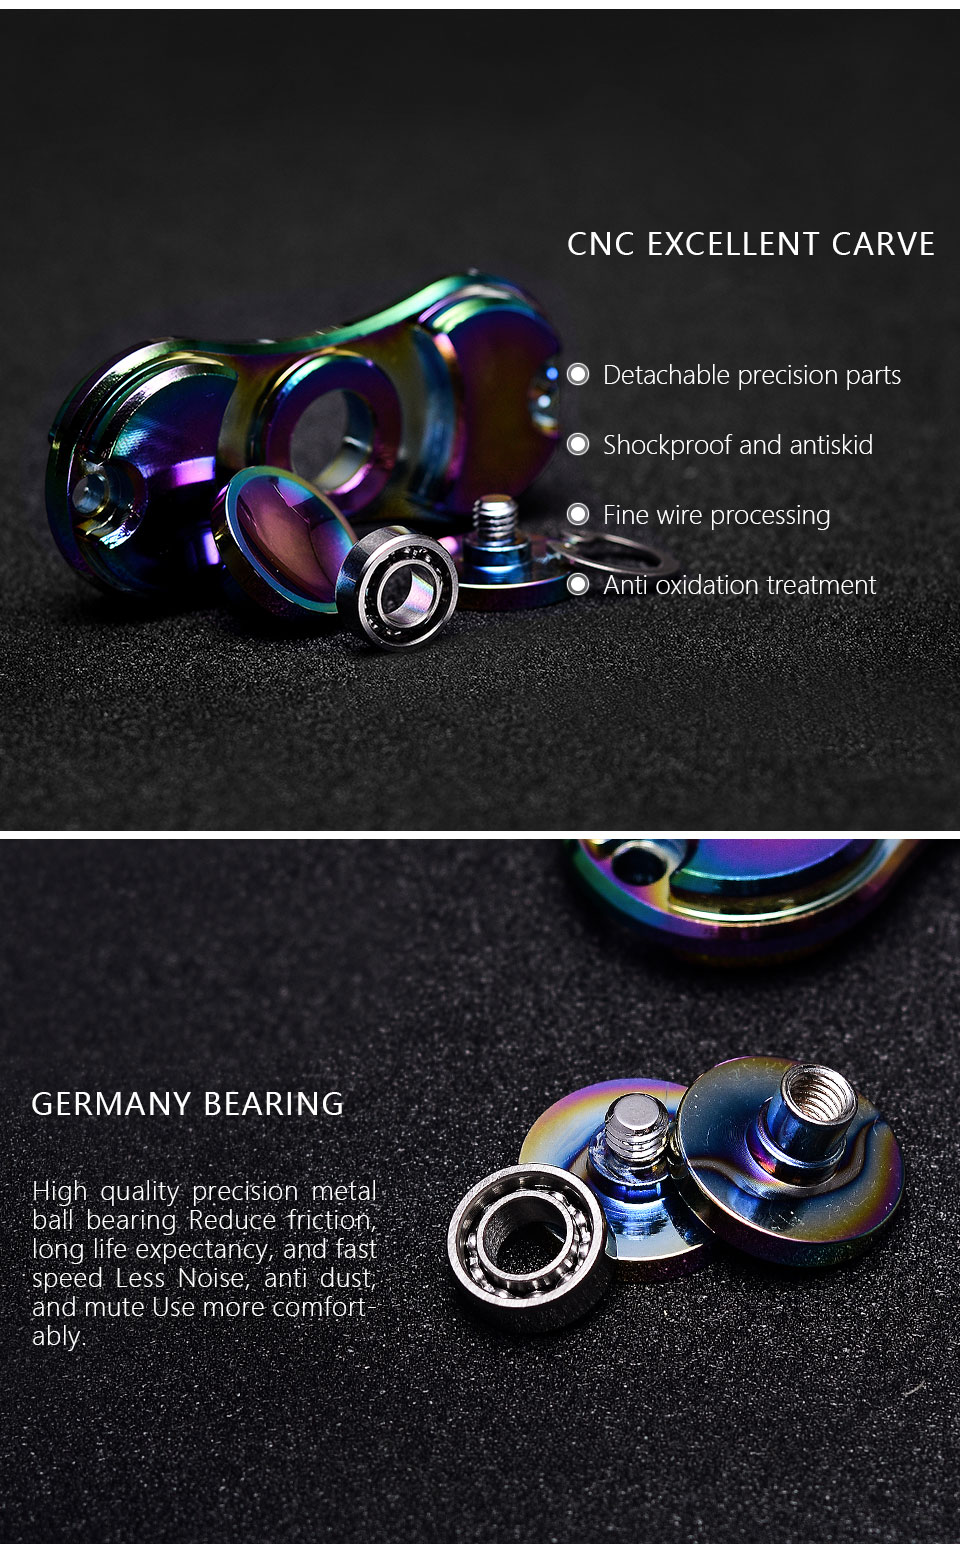 Alloy Fidget Spinner Rainbow Color Lasting Rotation Fine Craft Low Falstadt Circuit Simulator Mofachopper Bauen Builden Und Essen Noise High Speed Hand Xct04 Us997